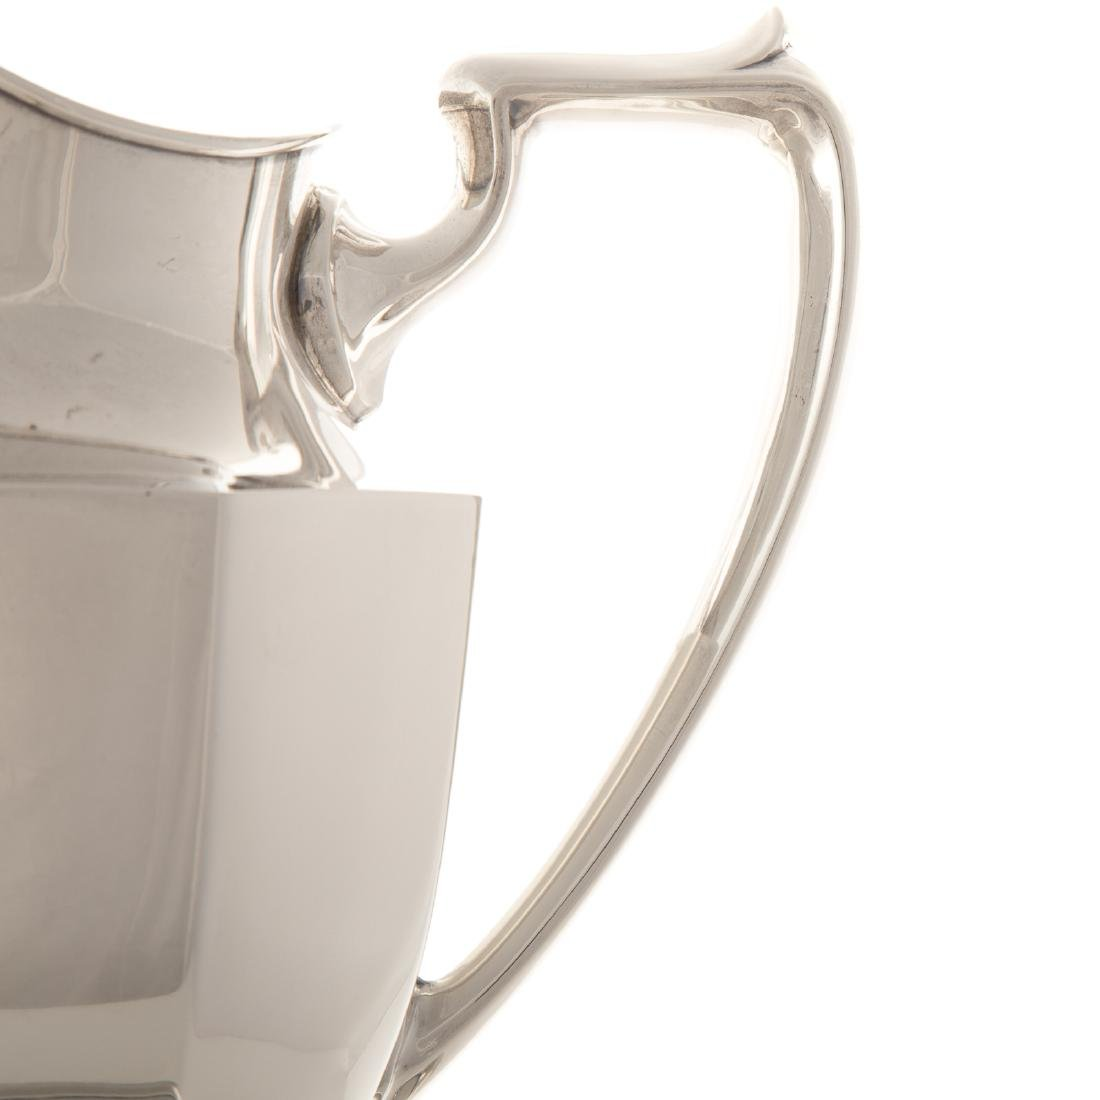 American sterling water pitcher and a tray - 2